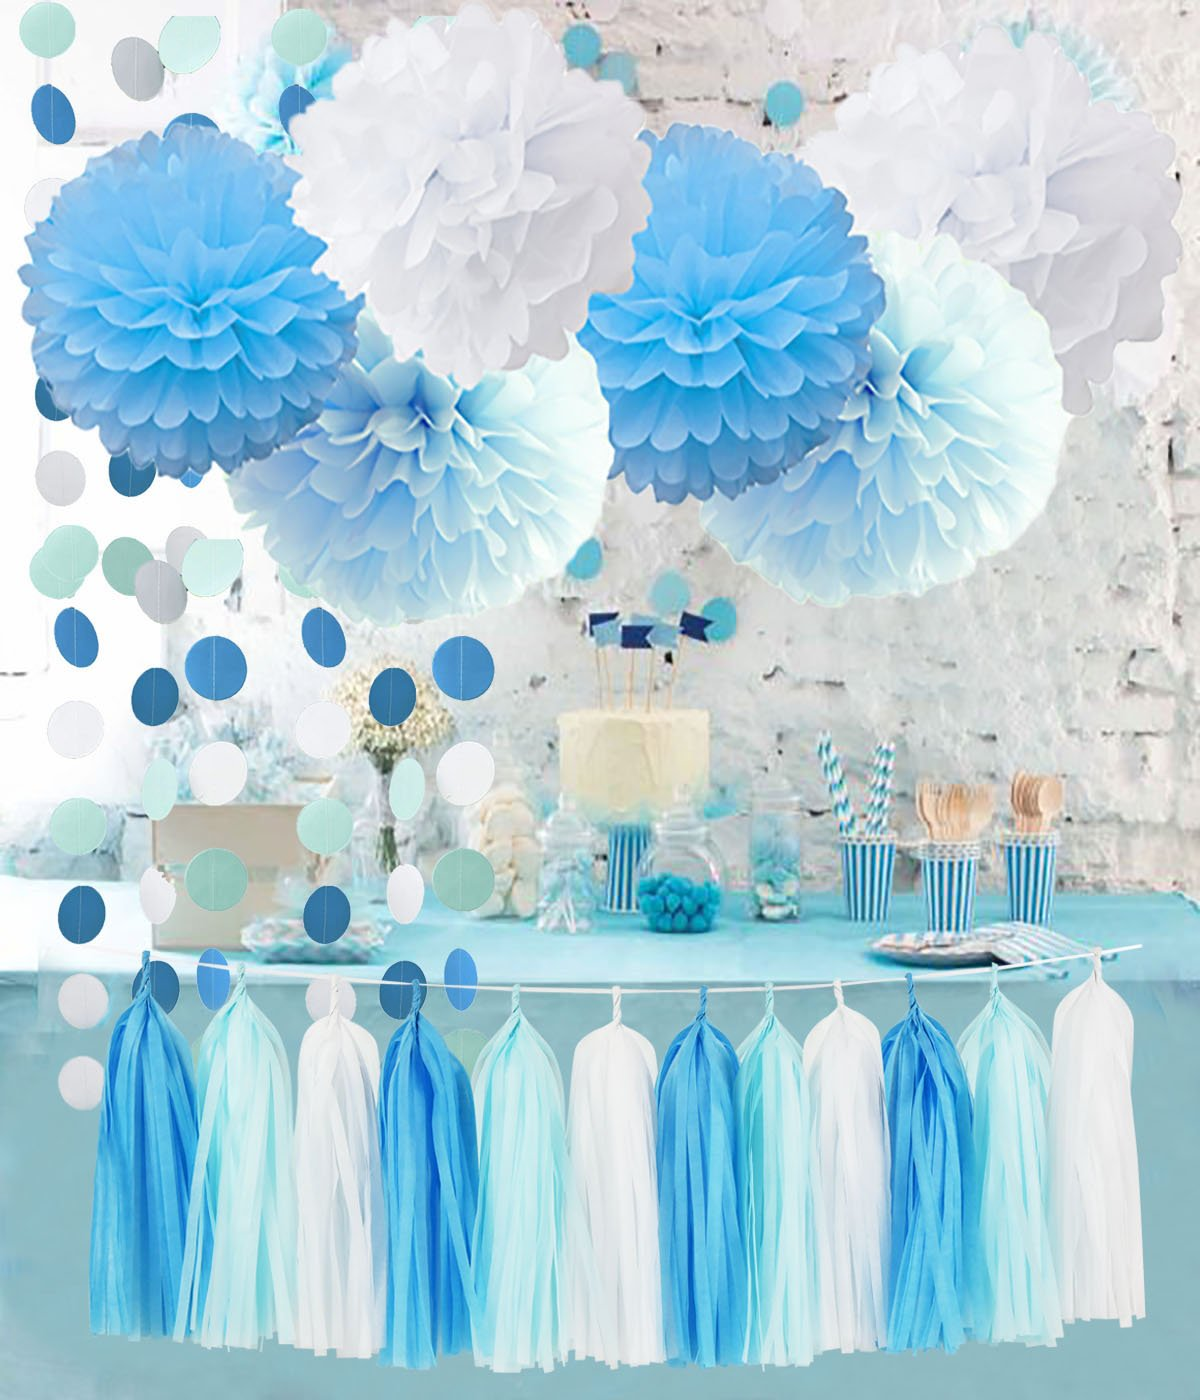 Furuix 20pcs Baby Shower Boy Decorations Boy Tassel Garland Paper Garland Blue Birthday Tassels Turquoise Baby Blue White Gender Reveal Tissue Paper Tassel Garland Tissue Paper Pom Pom Circle Garland for Rustic Wedding, Baby Shower/Nursery, Birthday Party,